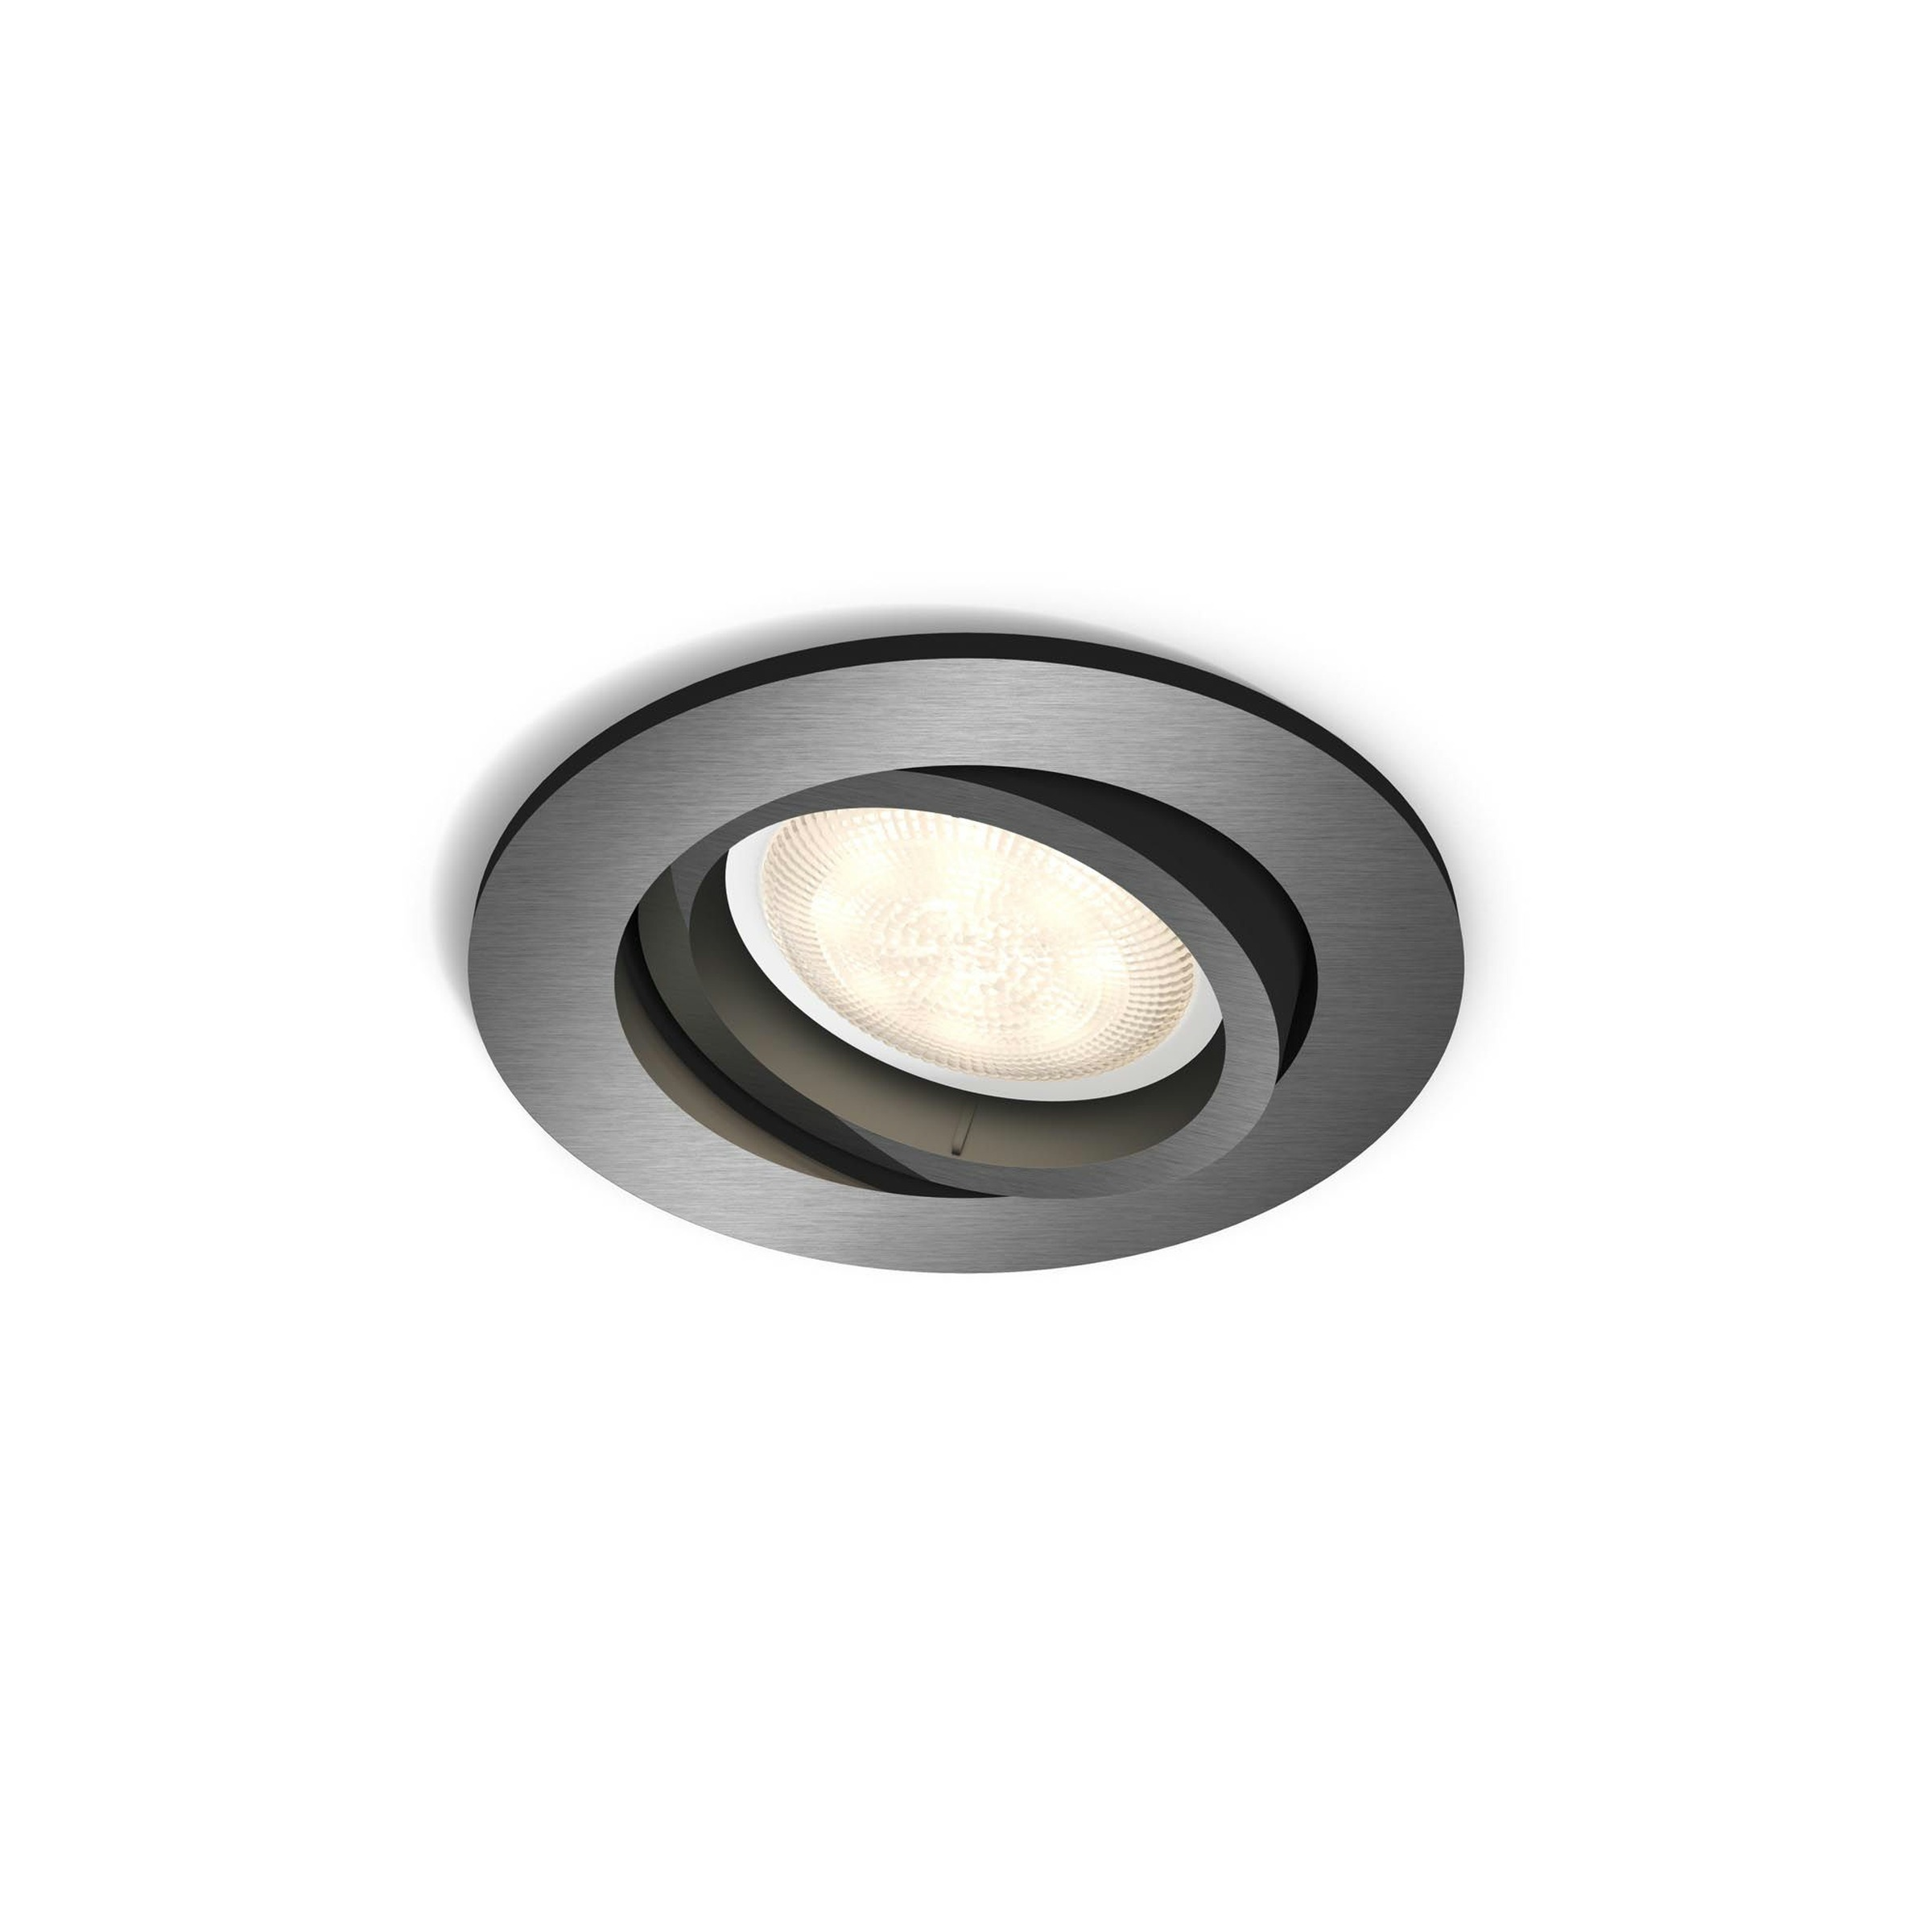 Philips Lighting Shellbark 5020199P0 LED-inbouwlamp 4.5 W Warm-wit Antraciet